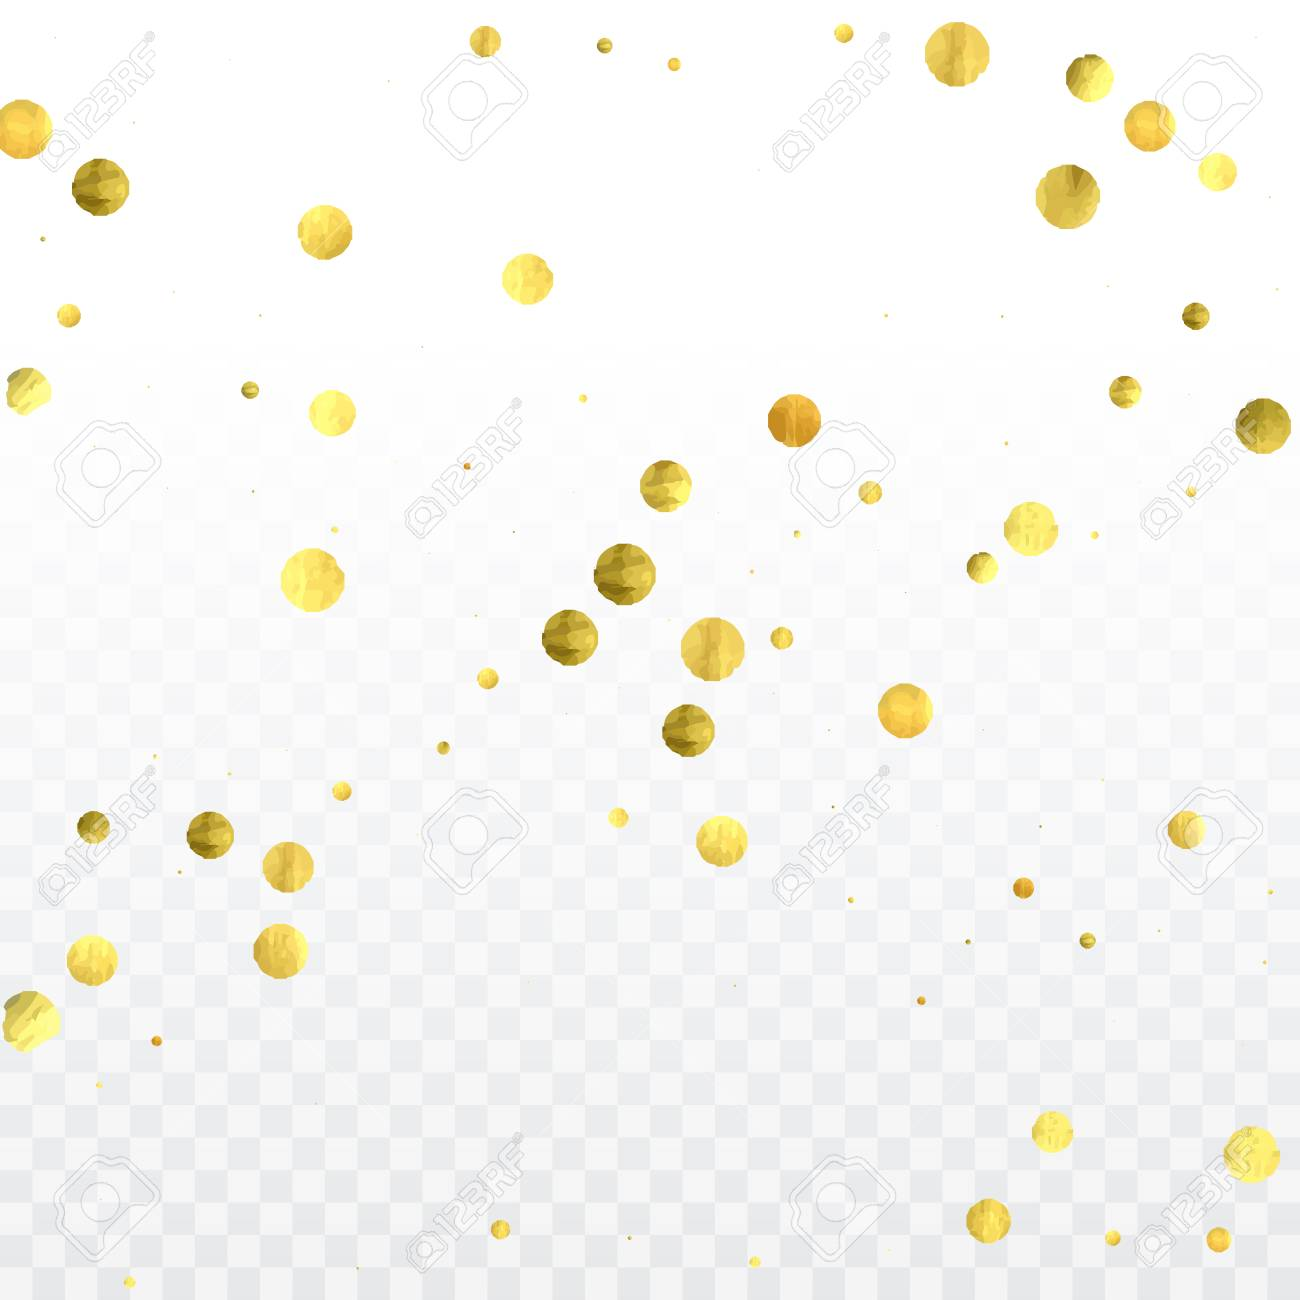 Gold Confetti Celebration Birthday Party Invitation Background